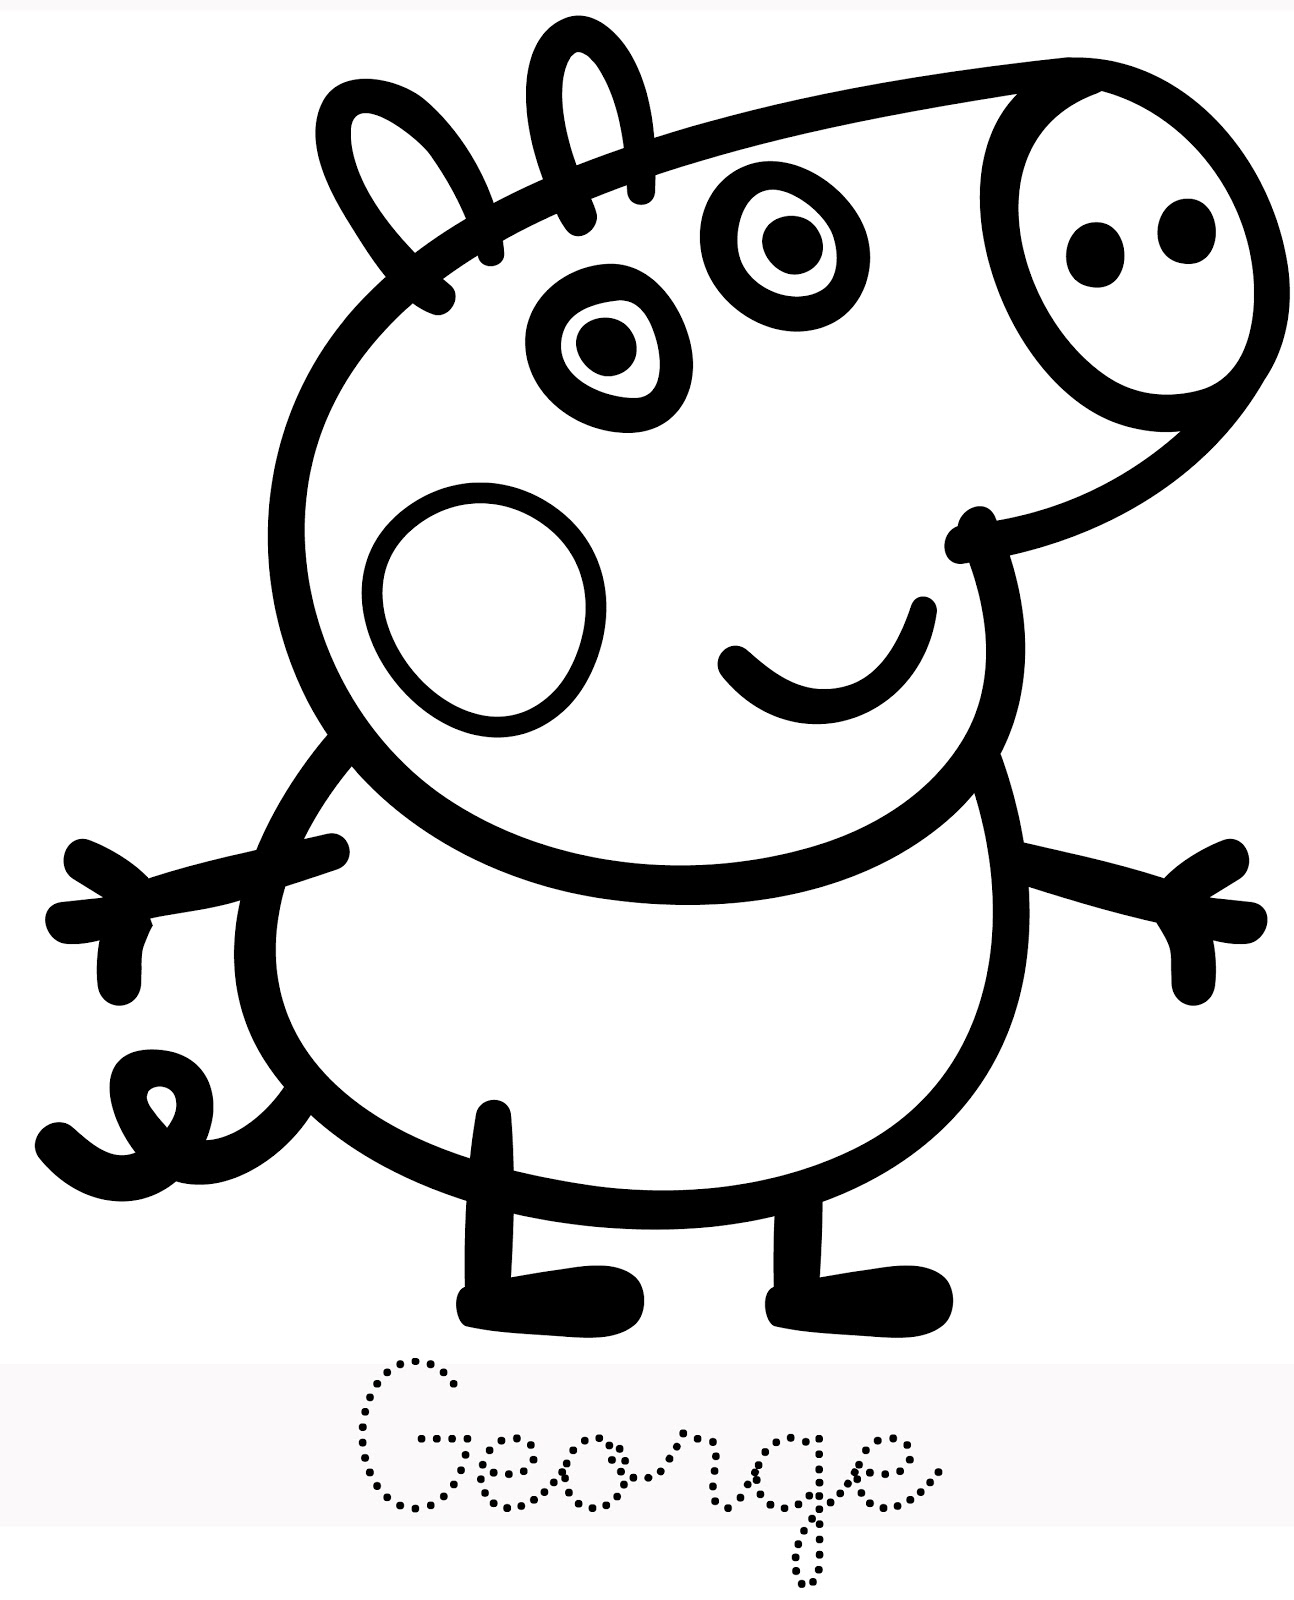 Pa paint pages to color online - Free Coloring Pages Online Pa Painting Pages Online Free Peppa Pig George Coloring Page